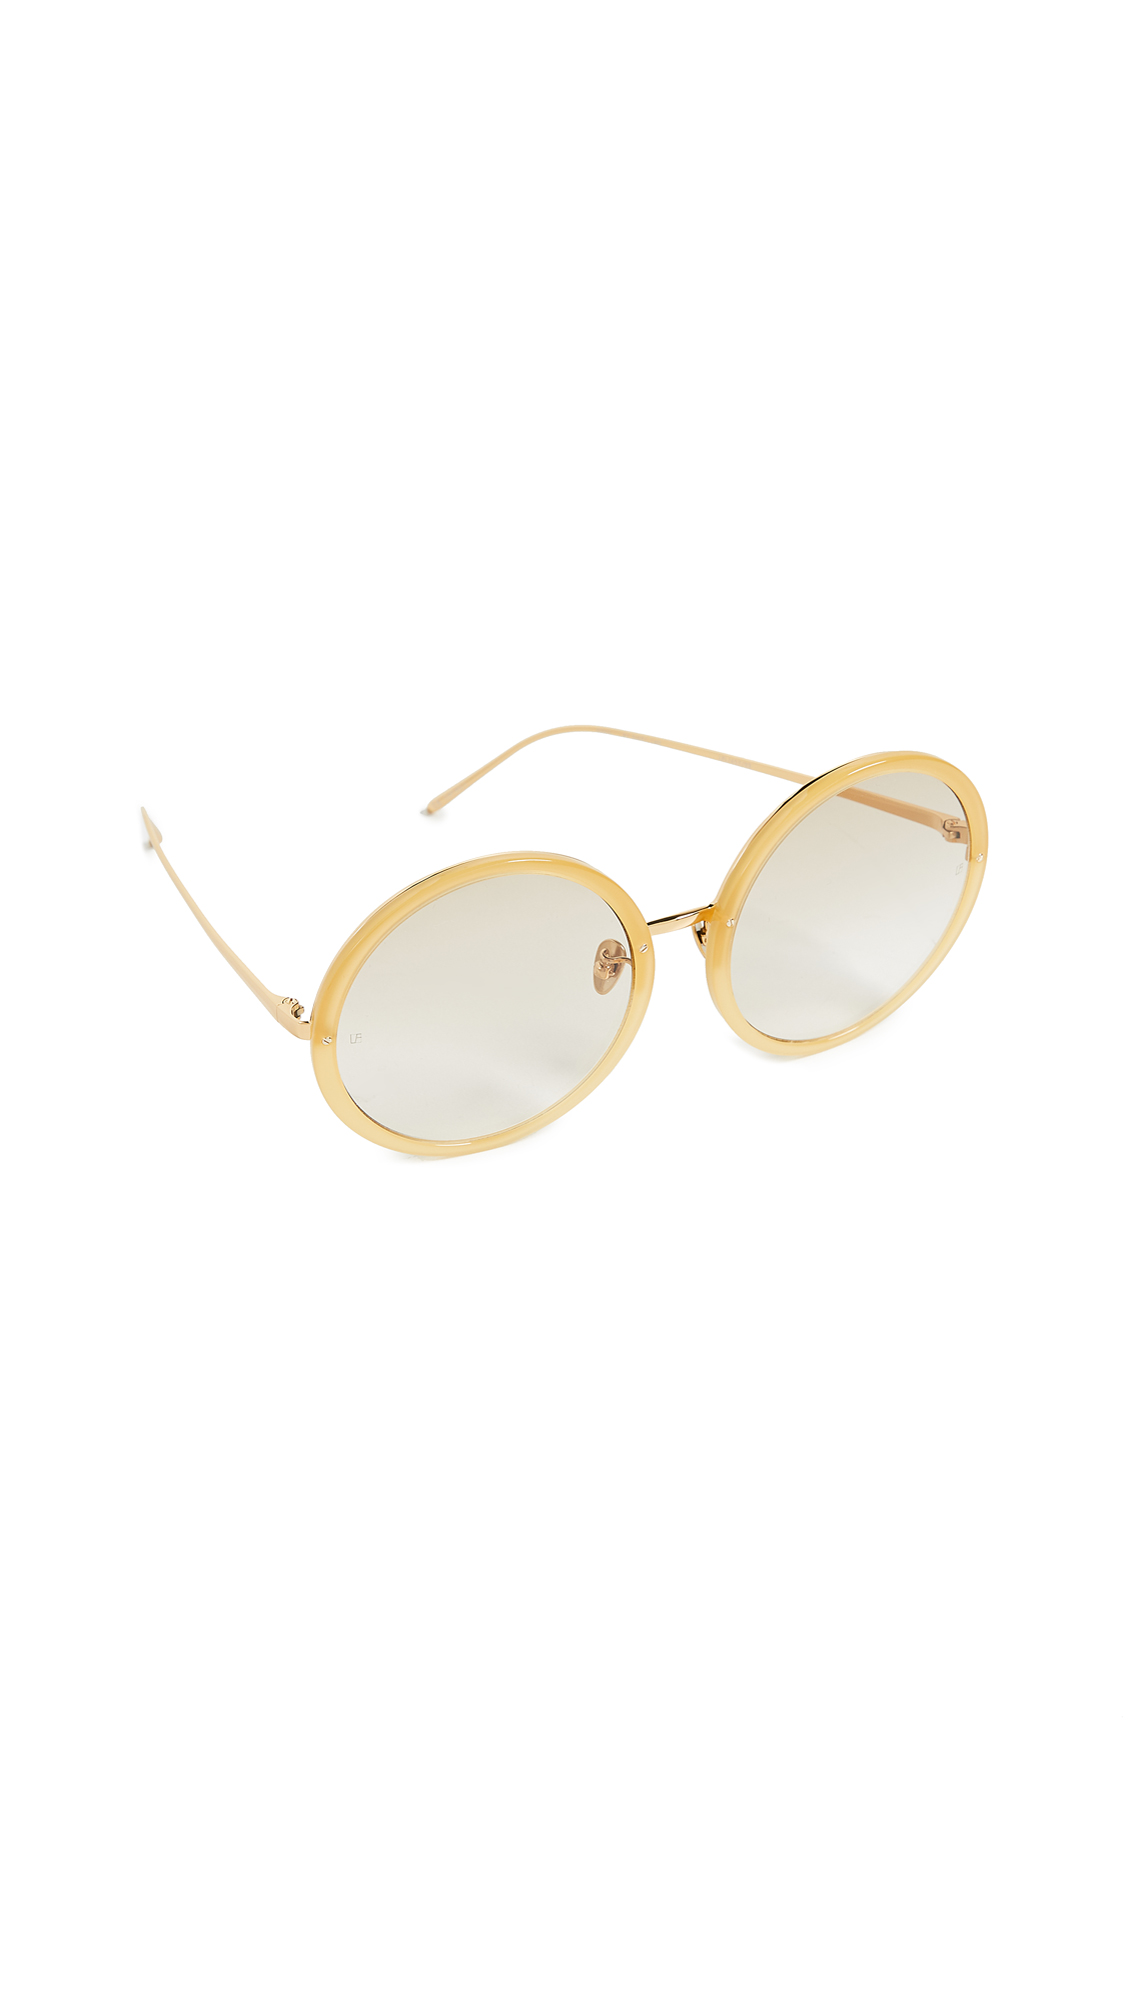 LINDA FARROW LUXE Oversized Round Sunglasses in Yellow Gold/Taupe